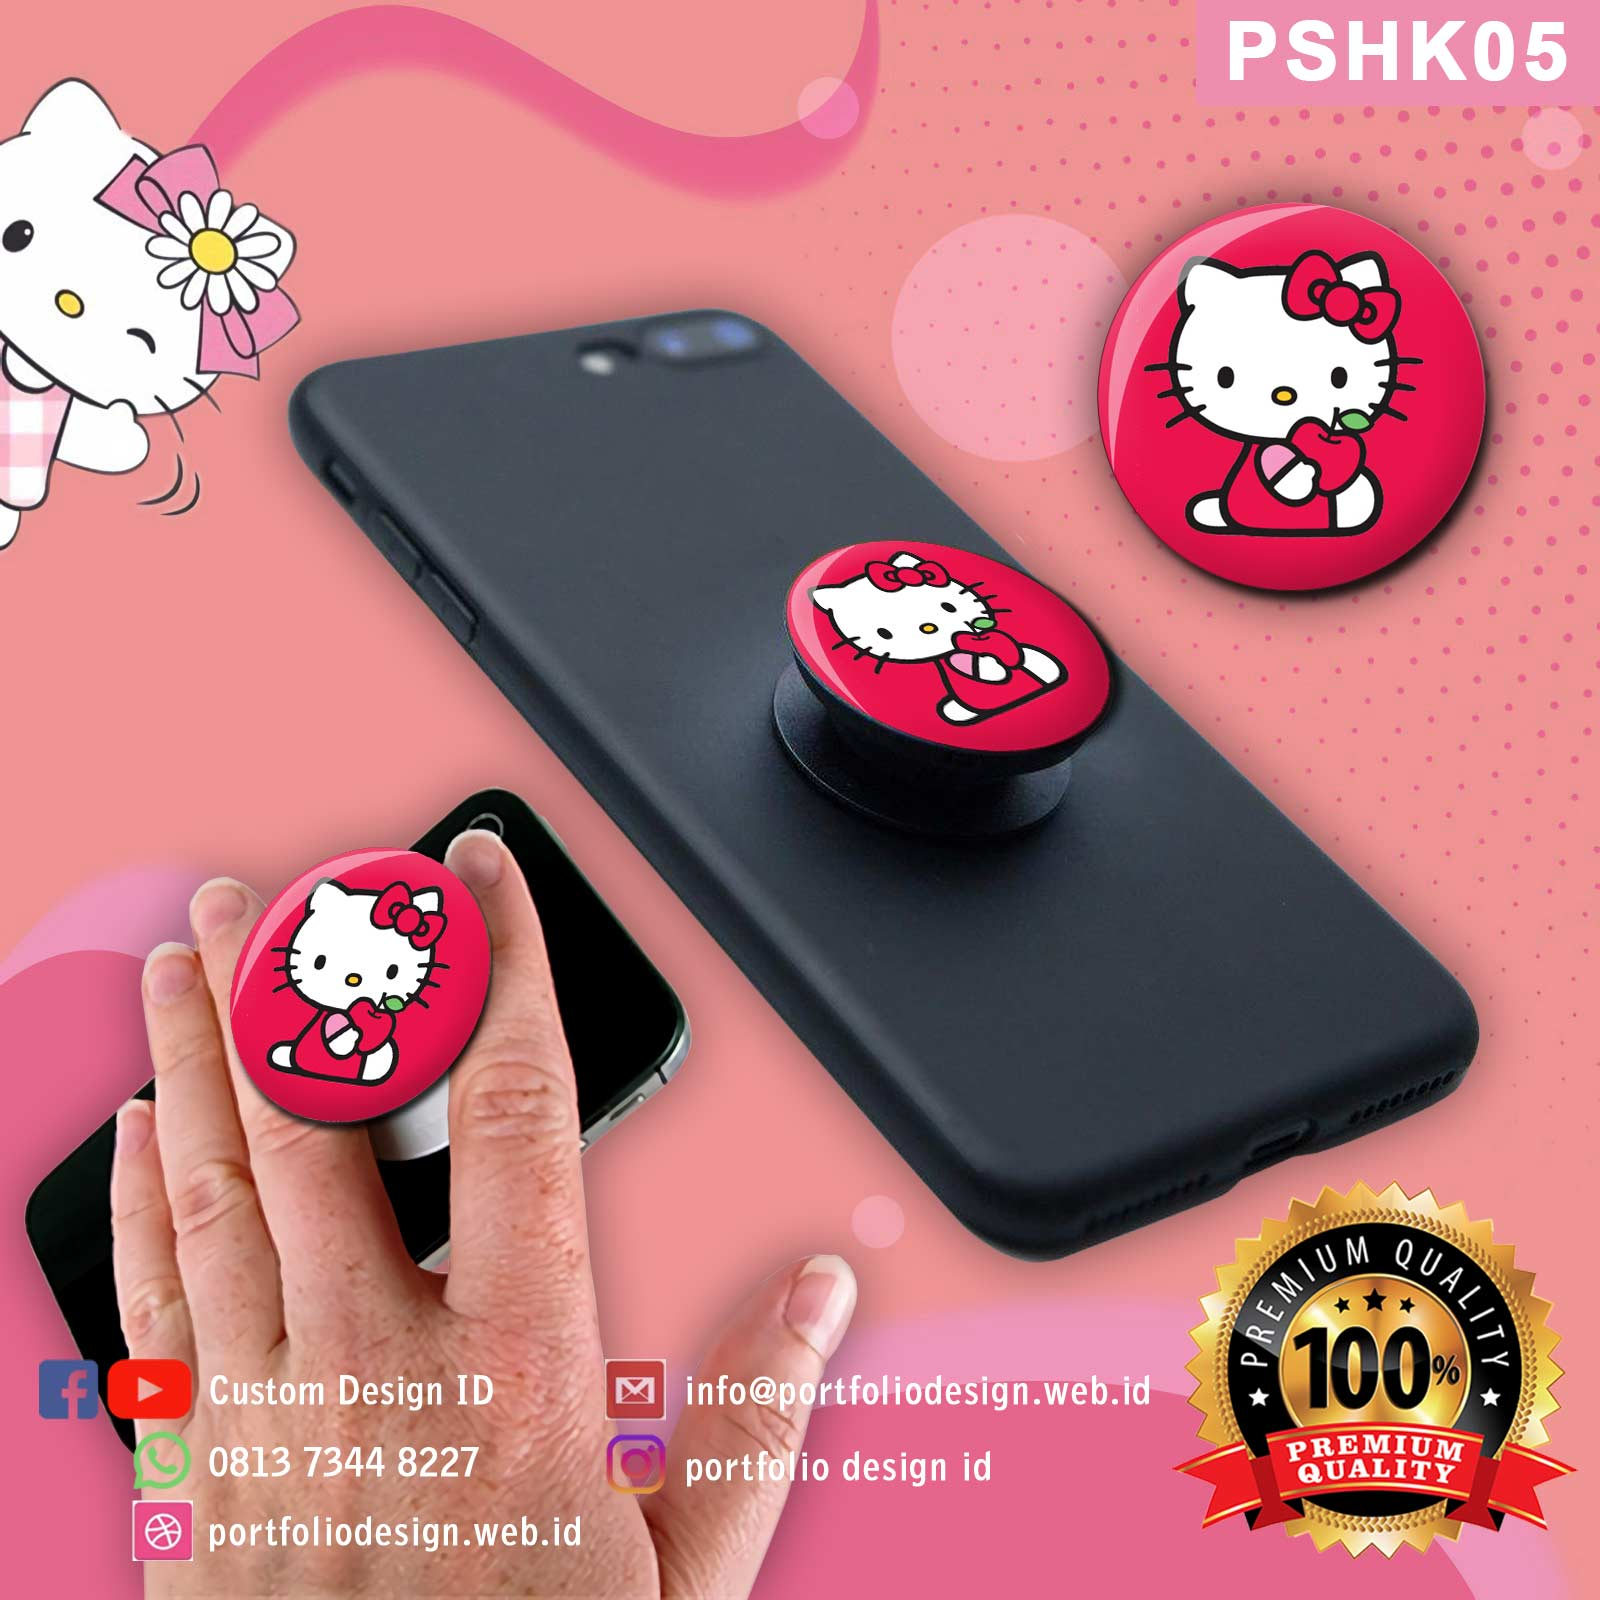 Aksesoris hp popsocket hello kitty murah custom desain PSHK05